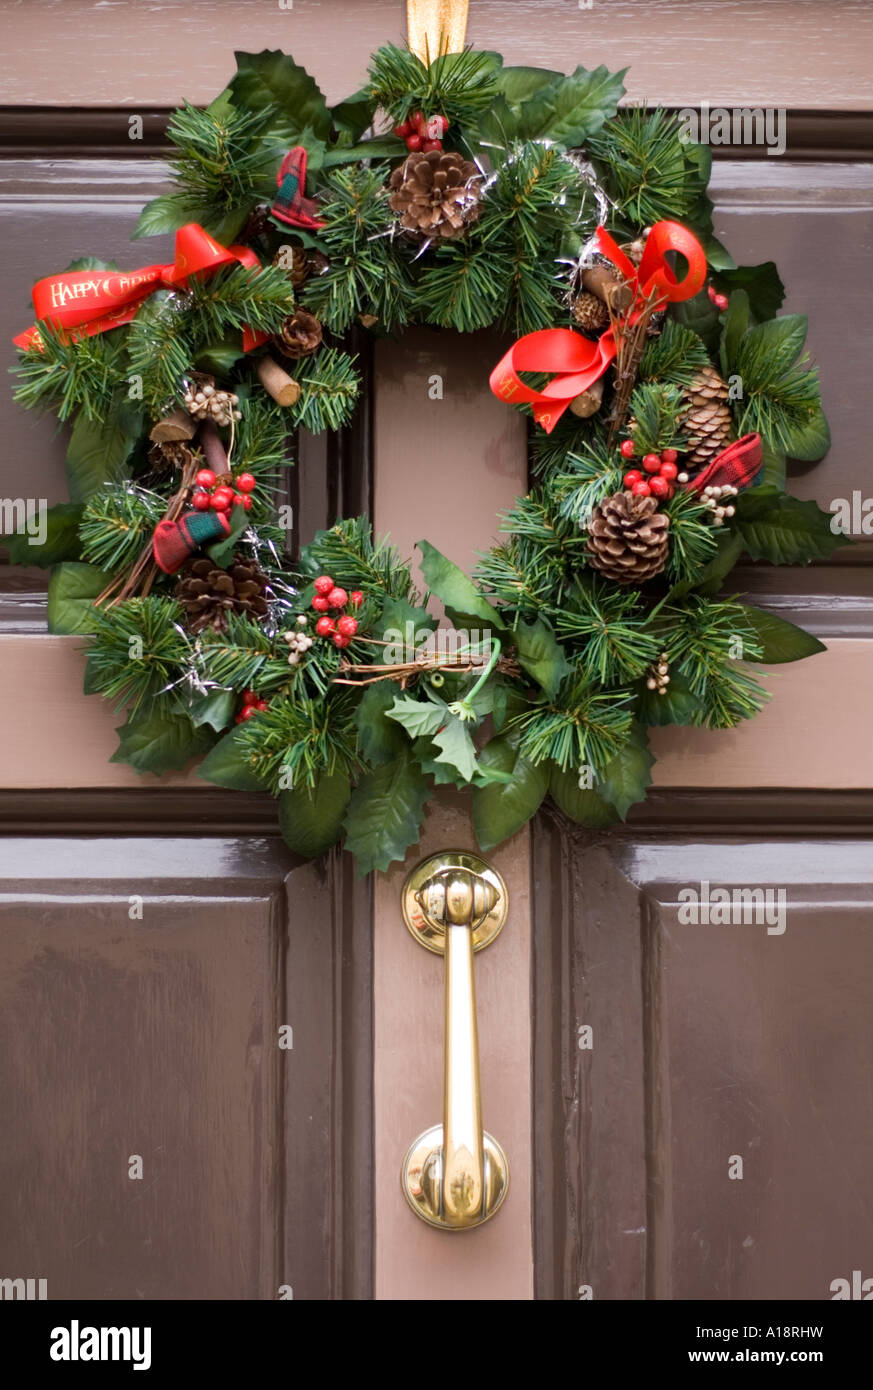 Front door christmas wreaths - England Uk Christmas Wreath On A Front Door